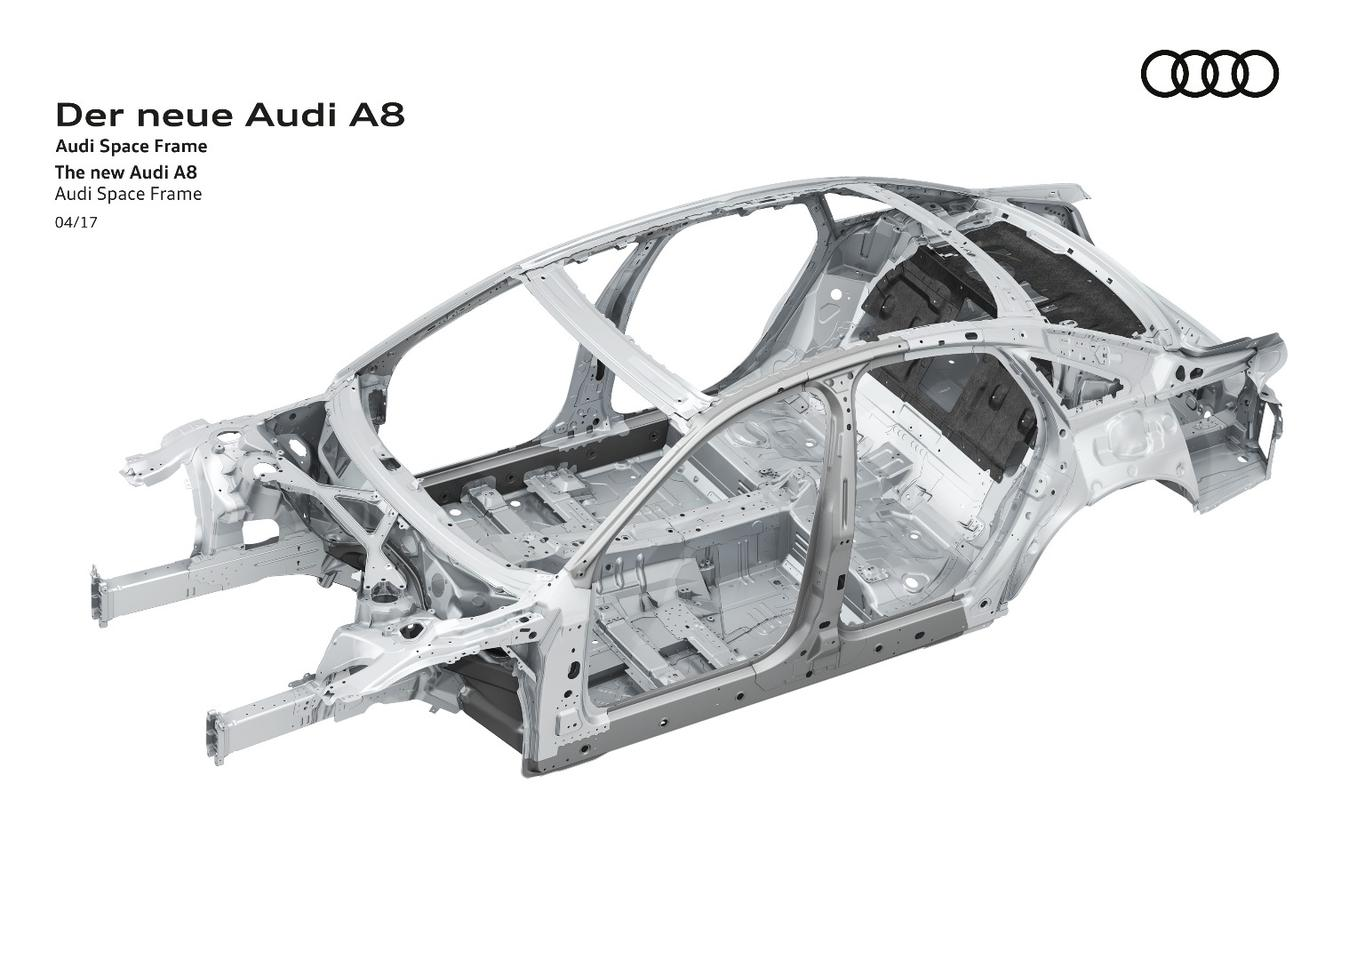 A closer look at the chassis underpinning the new Audi A8